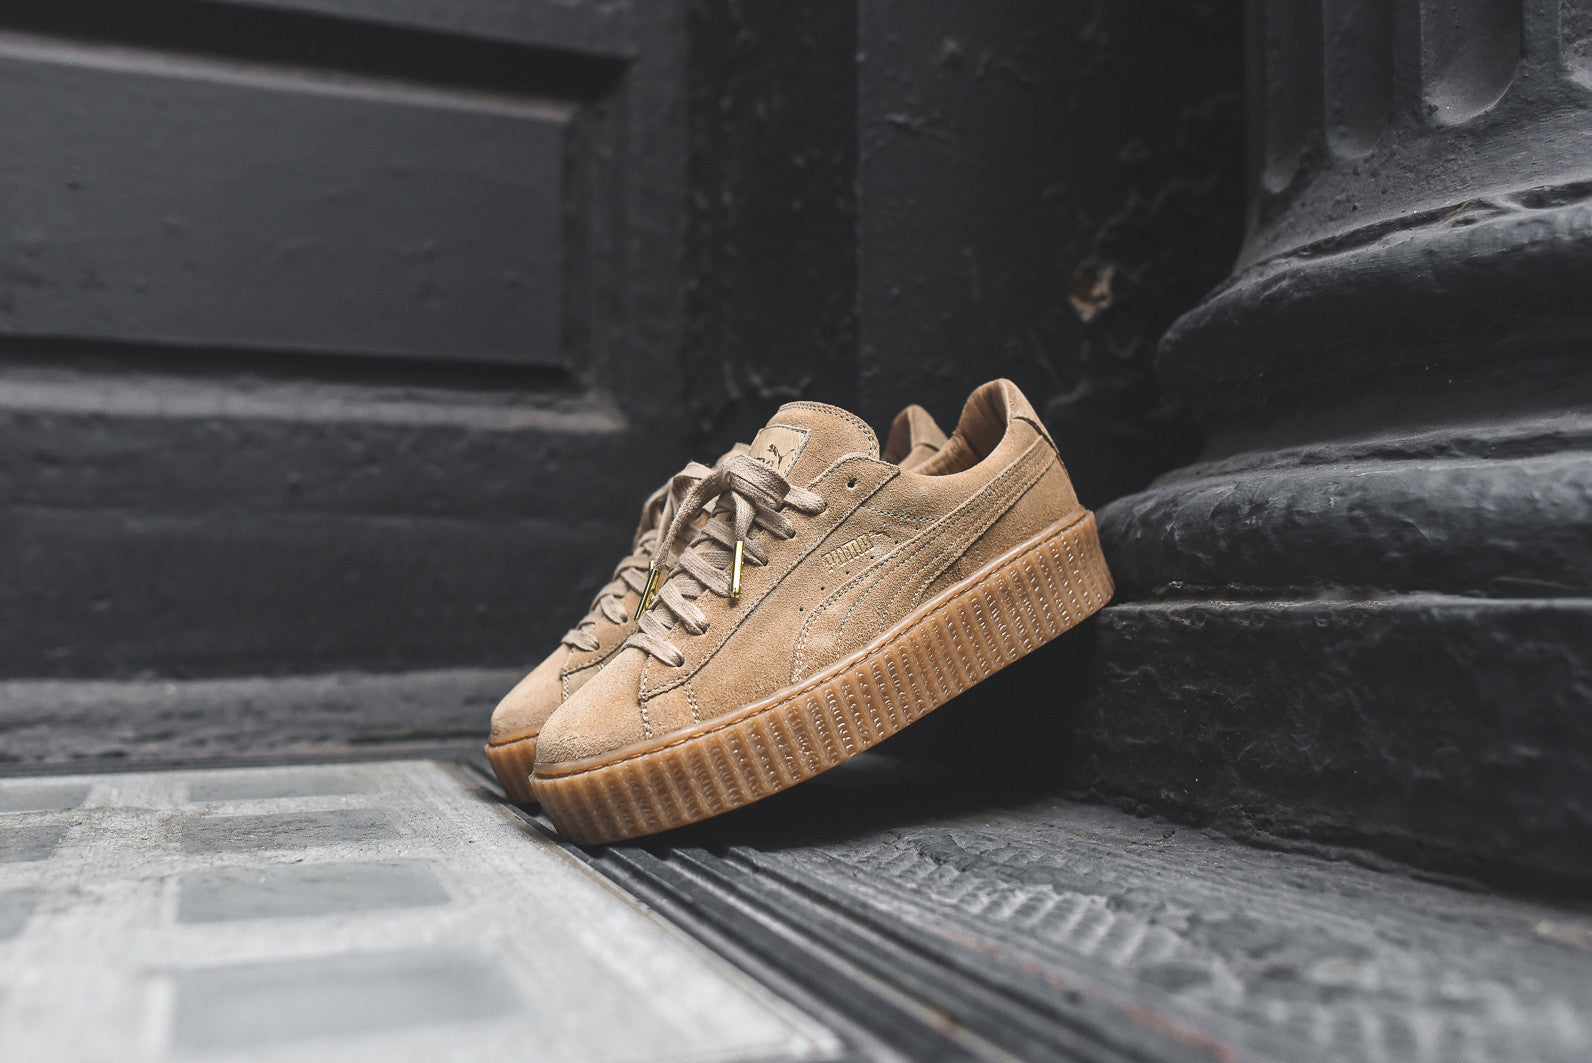 Puma x Rihanna WMNS Creeper - Wheat